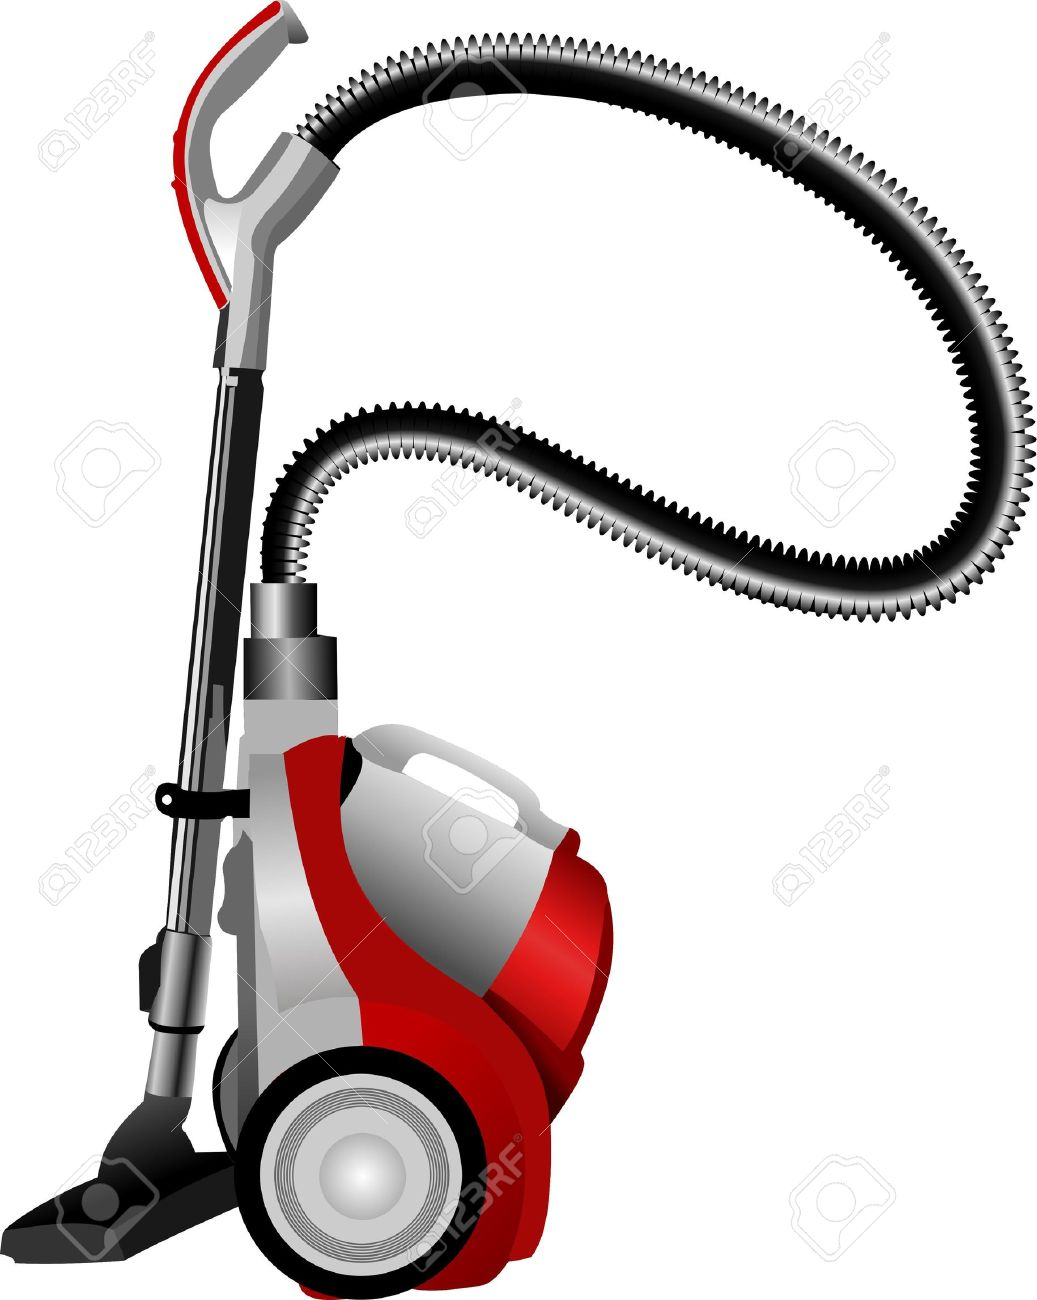 Home vacuum cleaner. Vector illustration Stock Vector - 10013531